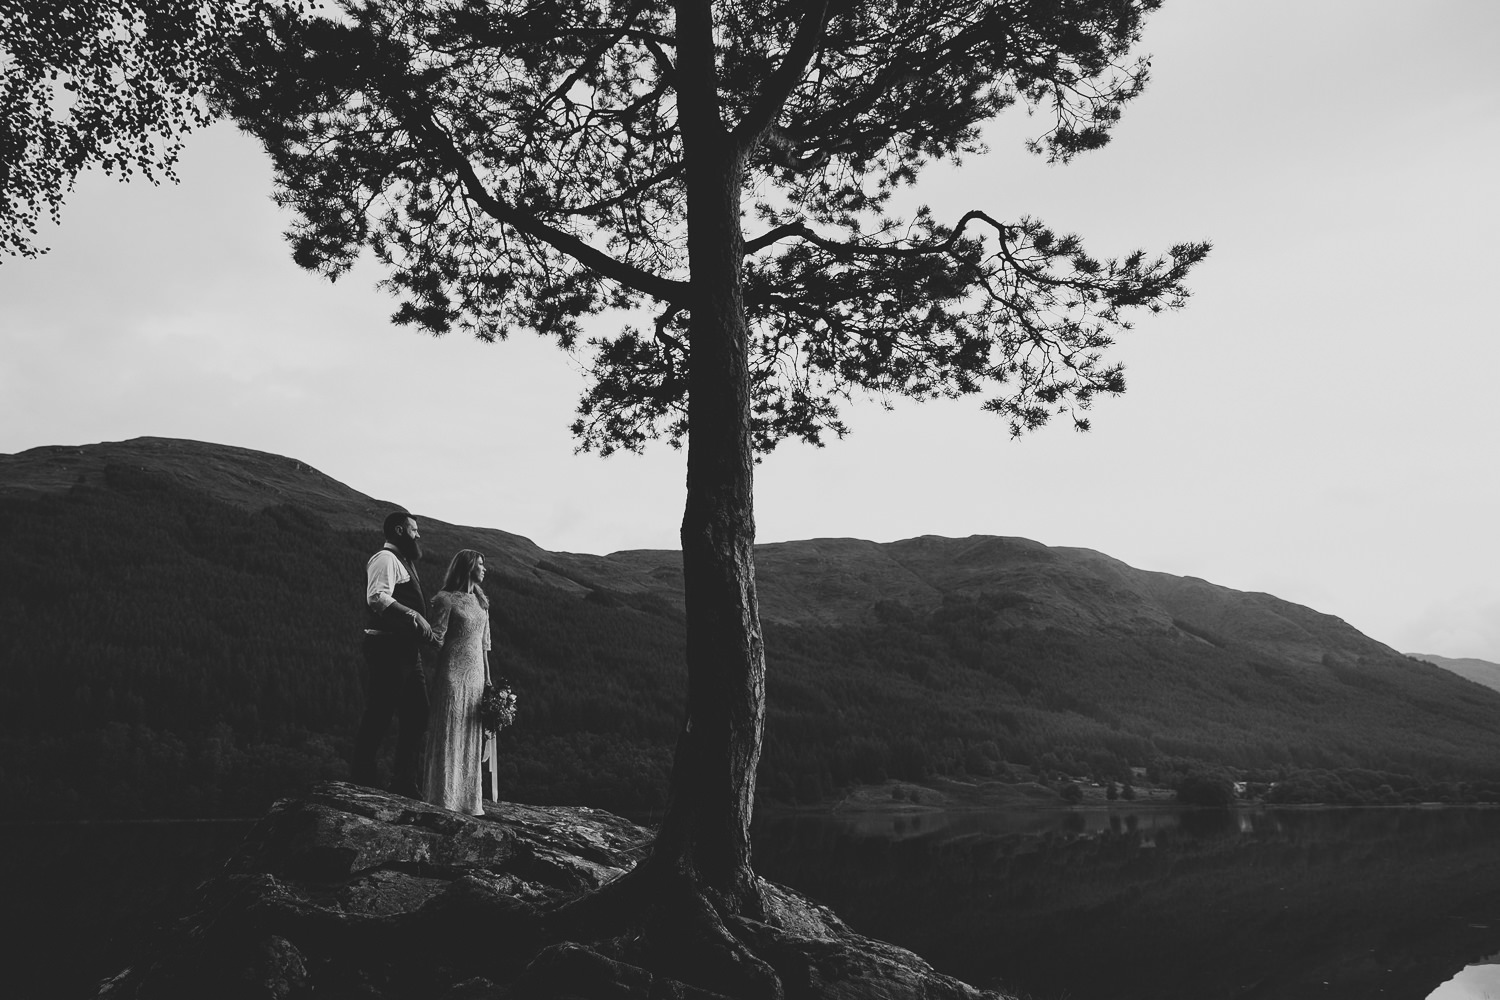 Loch-highland-elopement-wedding-13.jpg